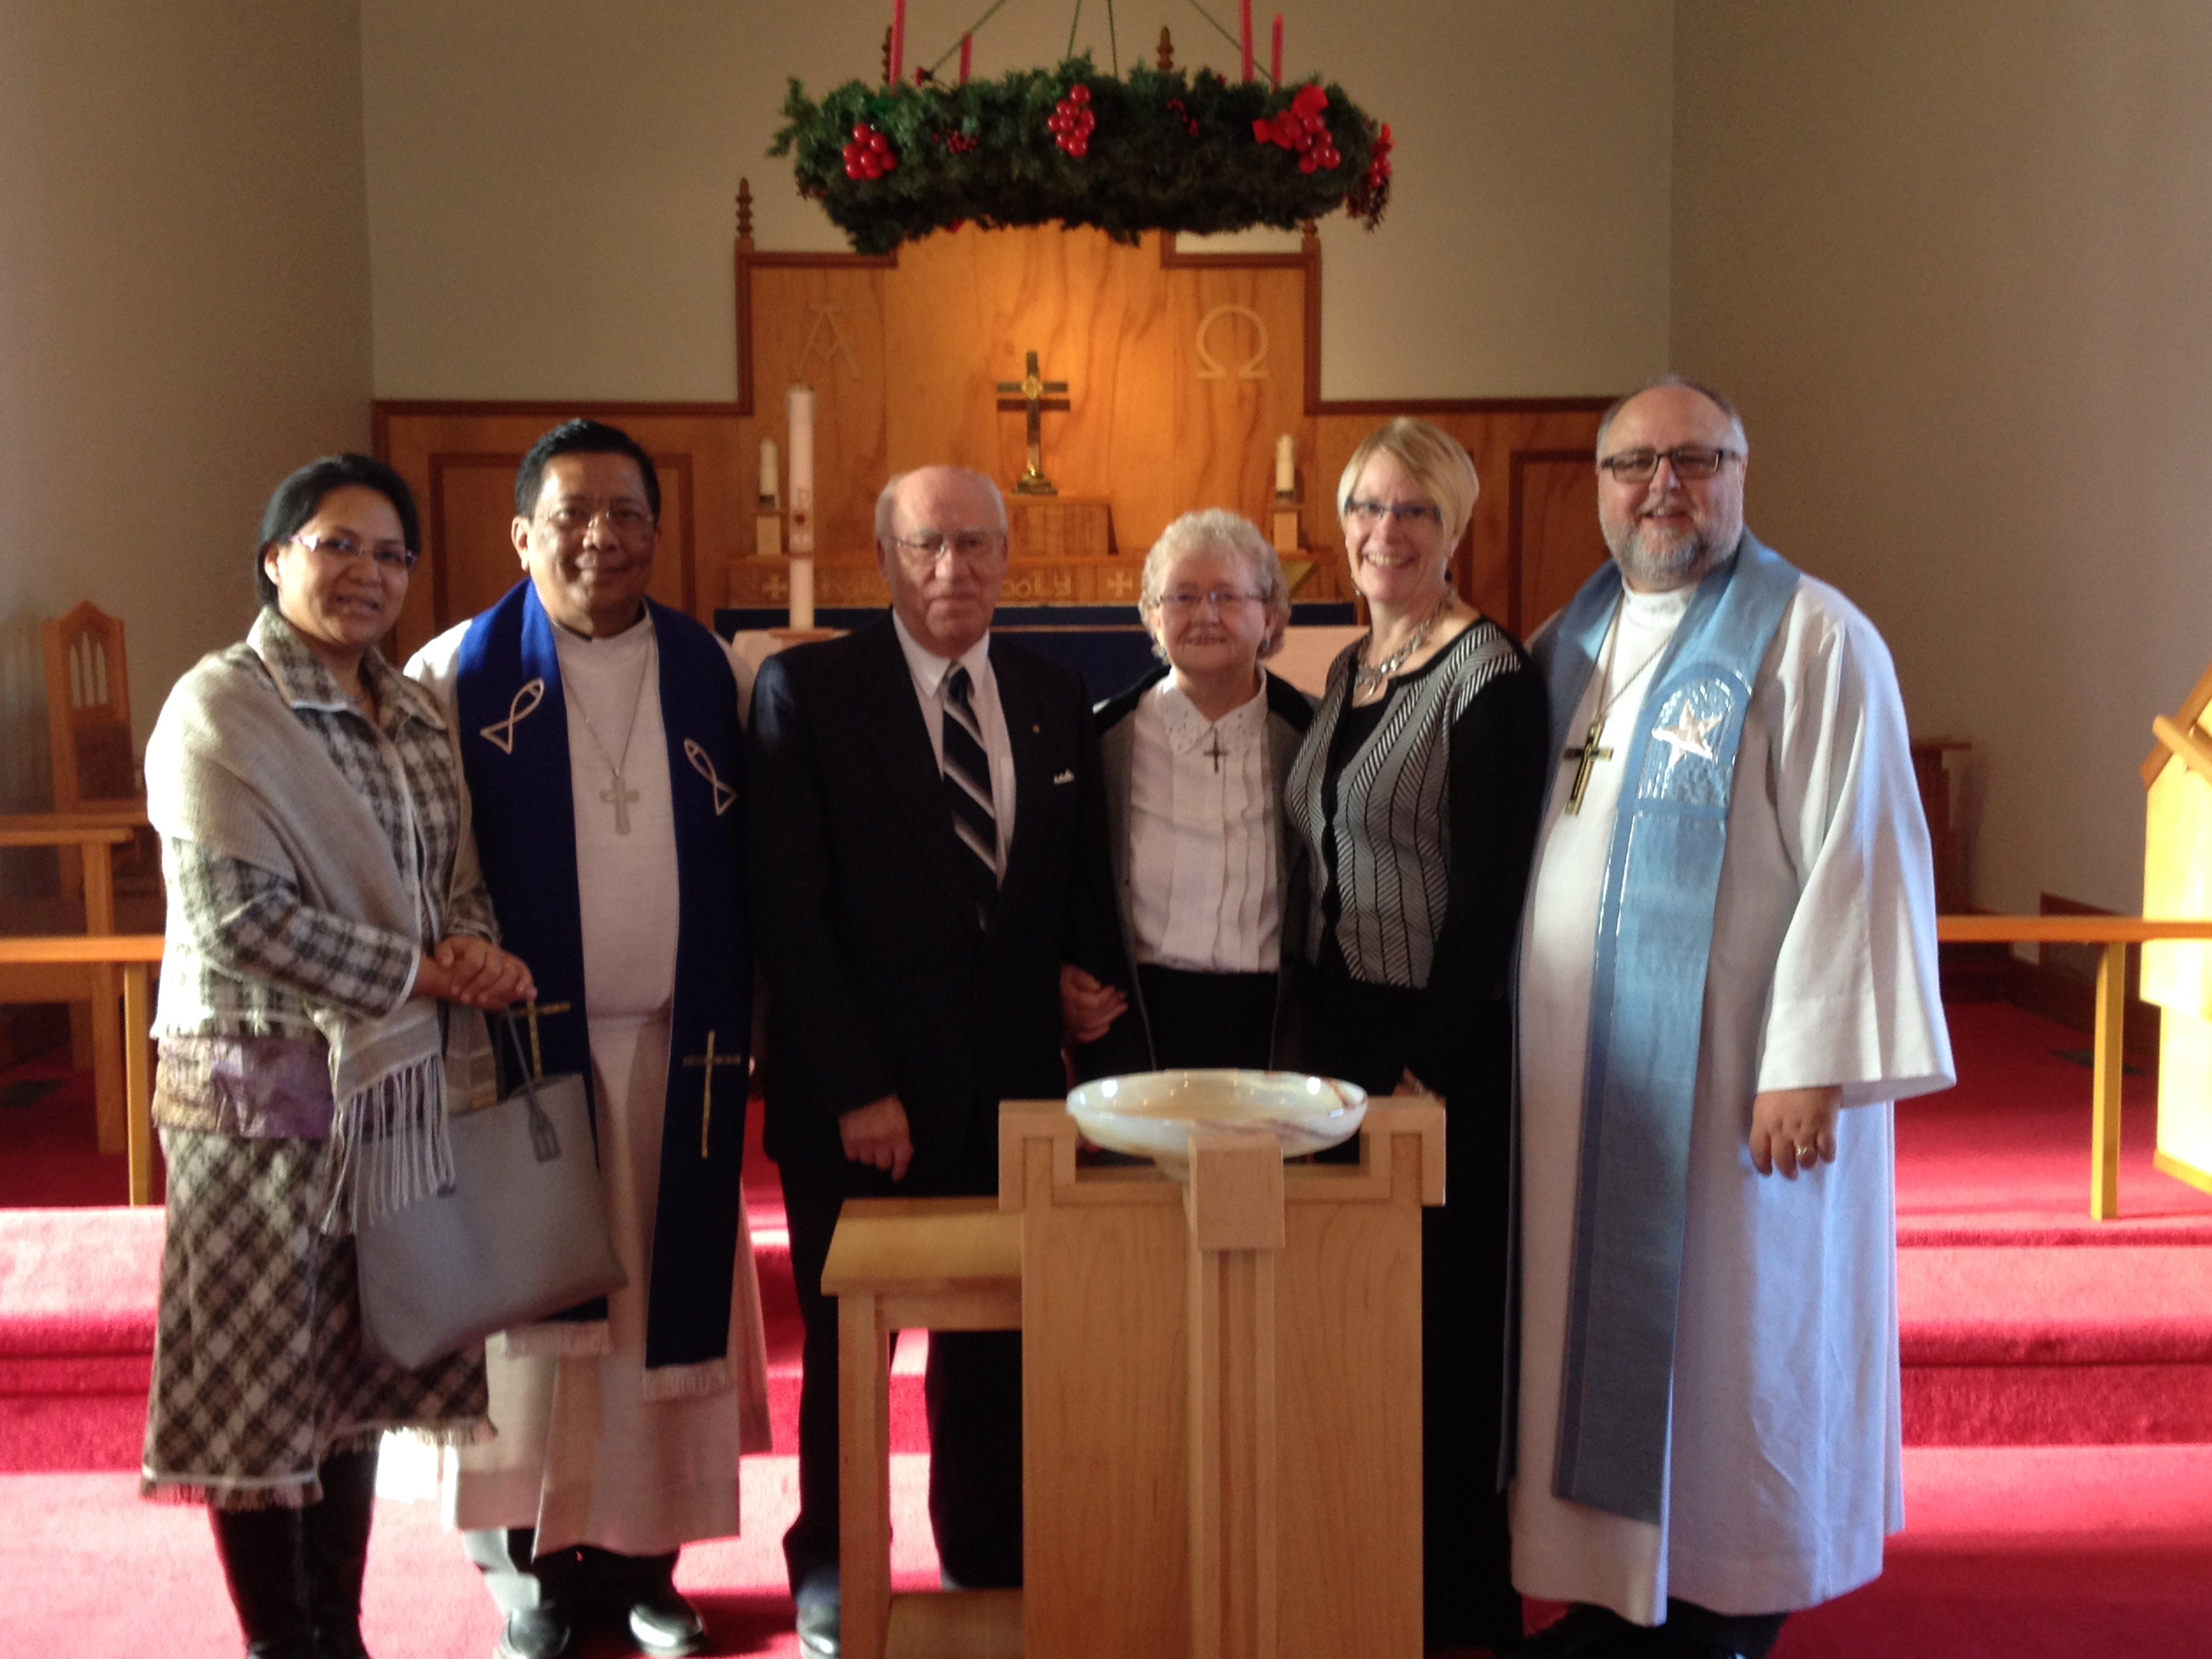 Advent 1, 2014 Christ Trinity, Lethbridge Pastor Olivier and Holy, Harold and Ella Martin, LAK, Cathy